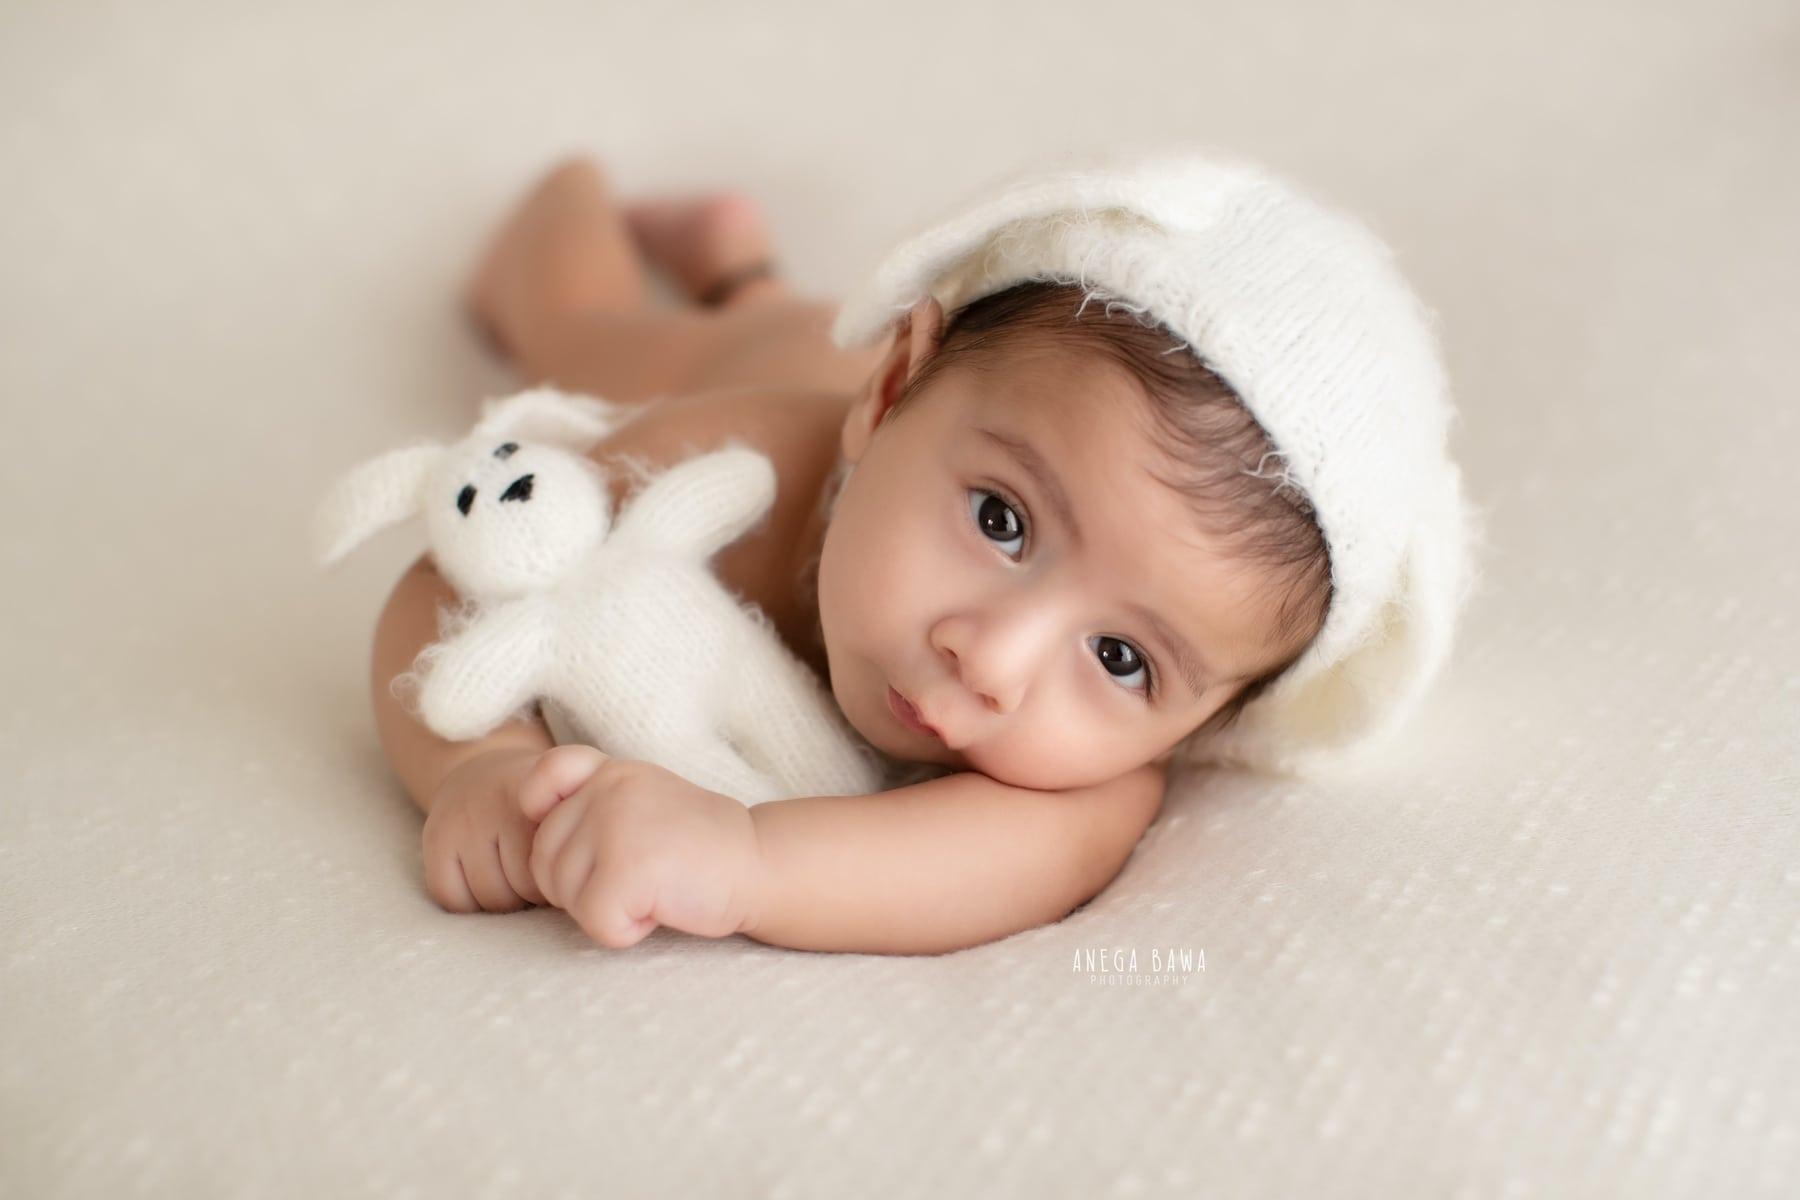 white baby photography delhi 4 months baby boy photoshoot gurgaon anega bawa